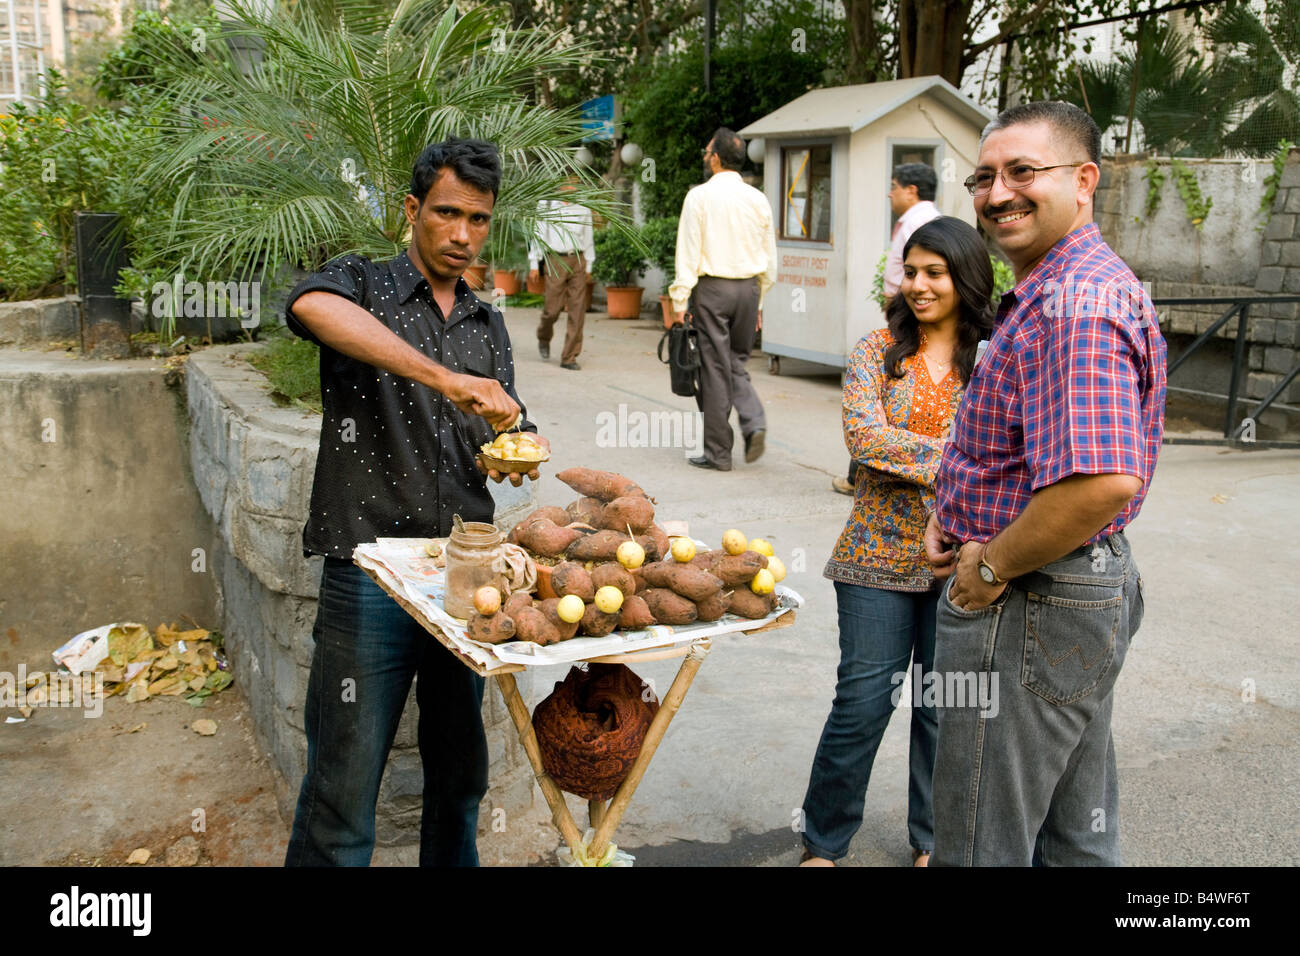 A street trader sells sweet potato to passers by, New Delhi, India - Stock Image